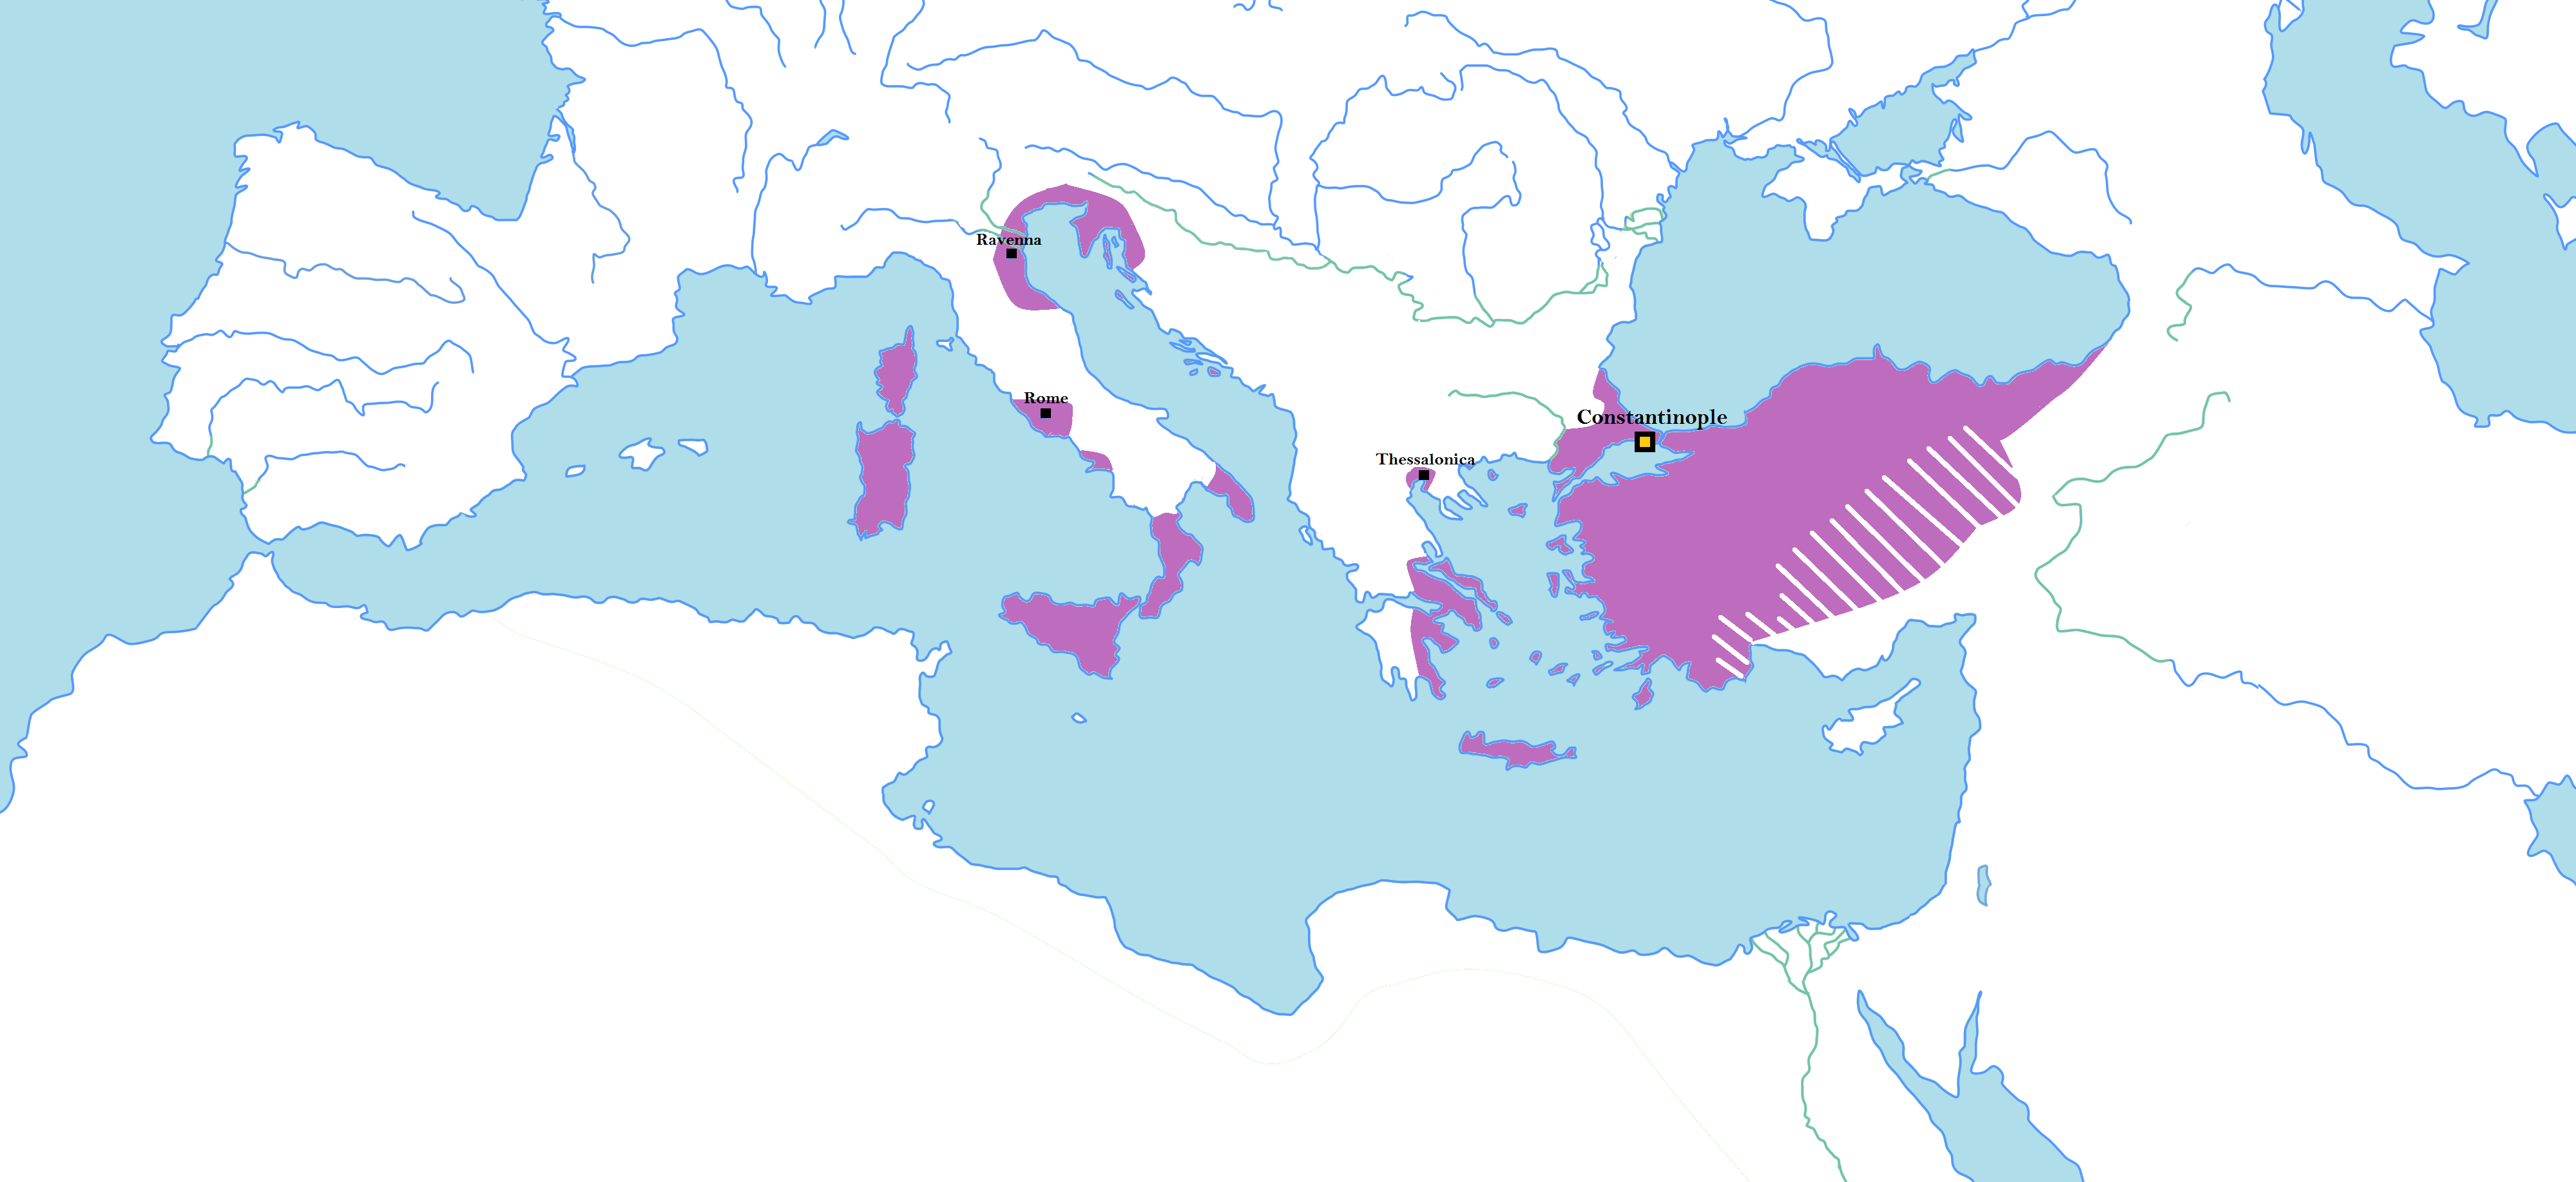 Byzantine Empire under the Isaurian dynasty - Wikipedia